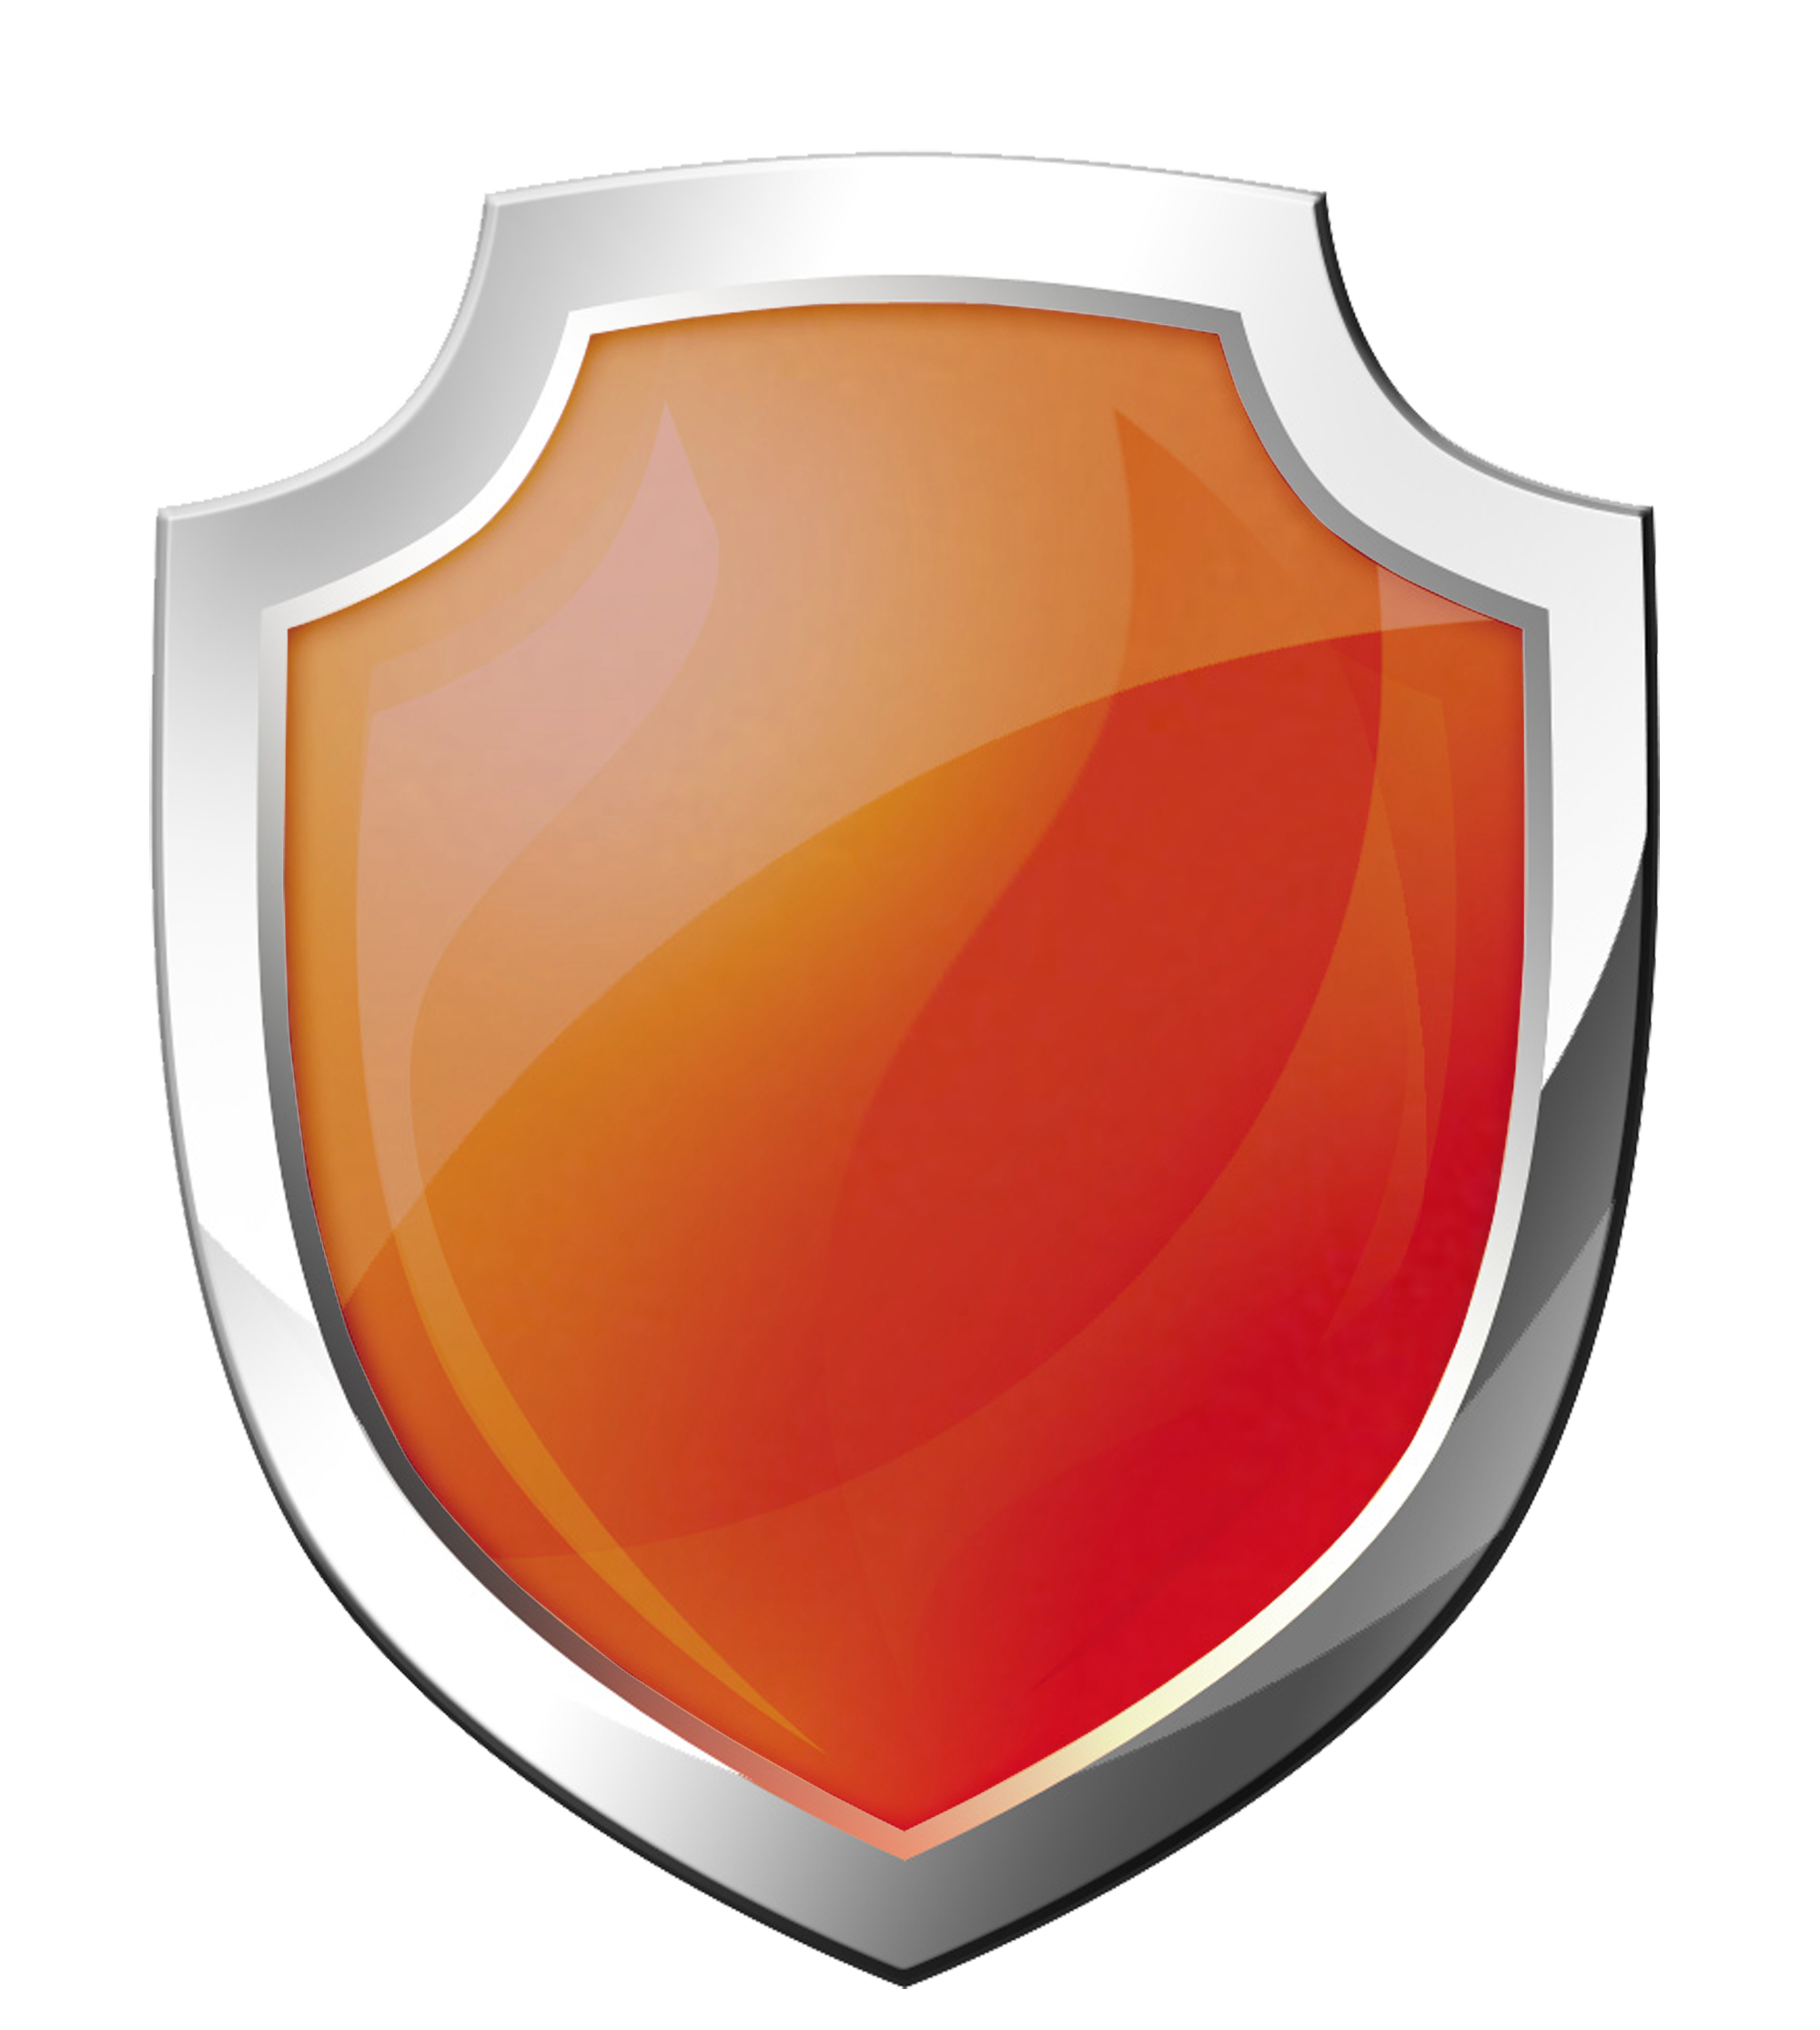 Apple clipart vintage coat of arms image transparent stock Shield Eighteen | Isolated Stock Photo by noBACKS.com image transparent stock